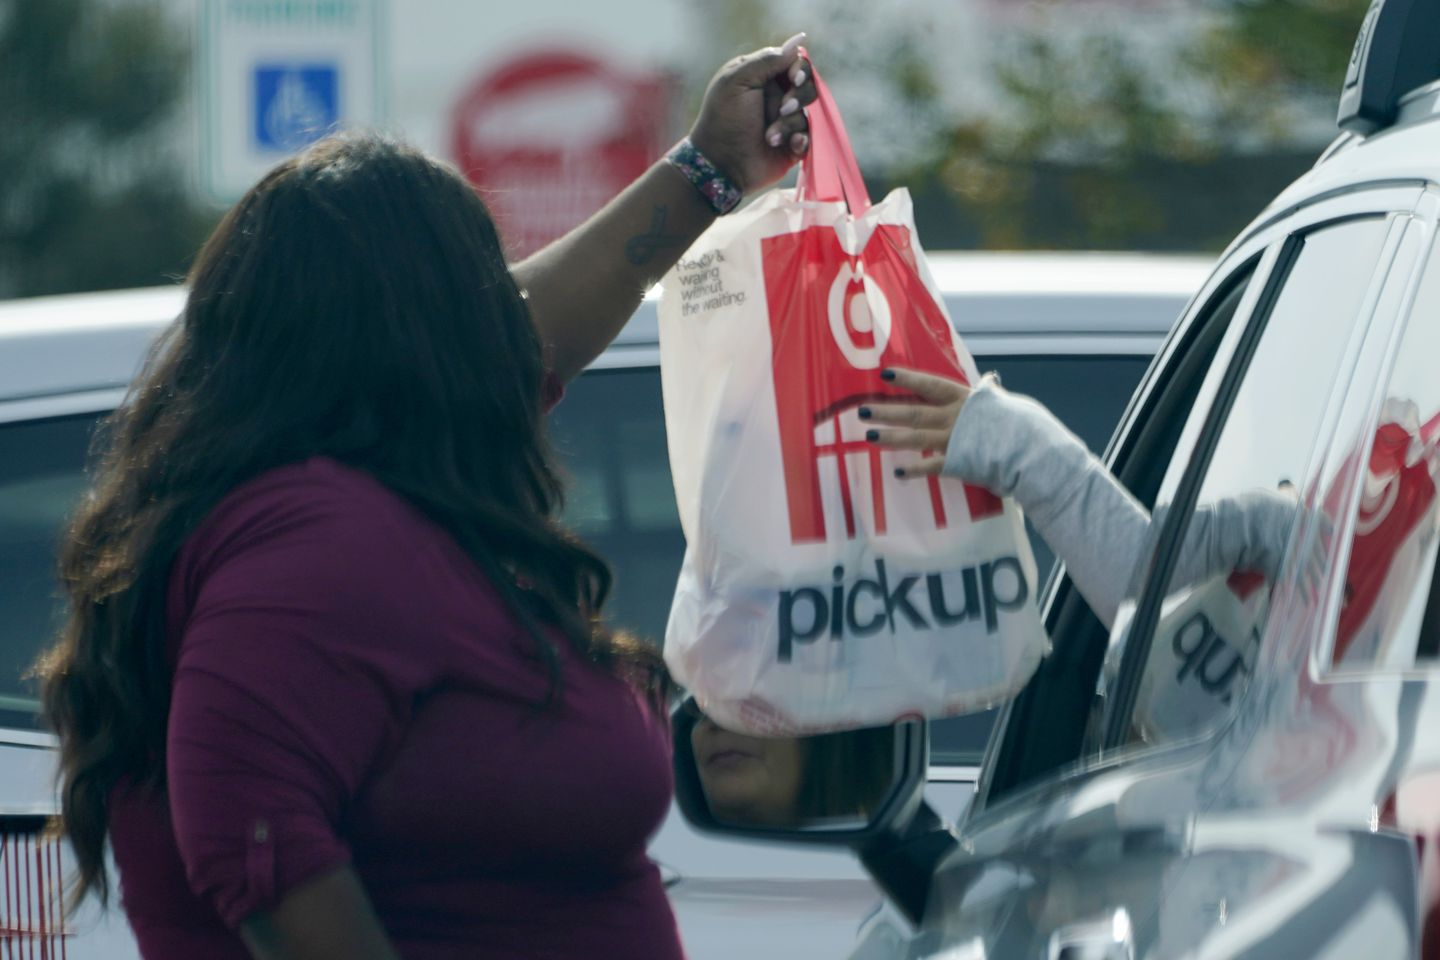 A Target employee handed a customer a curbside pickup purchase.